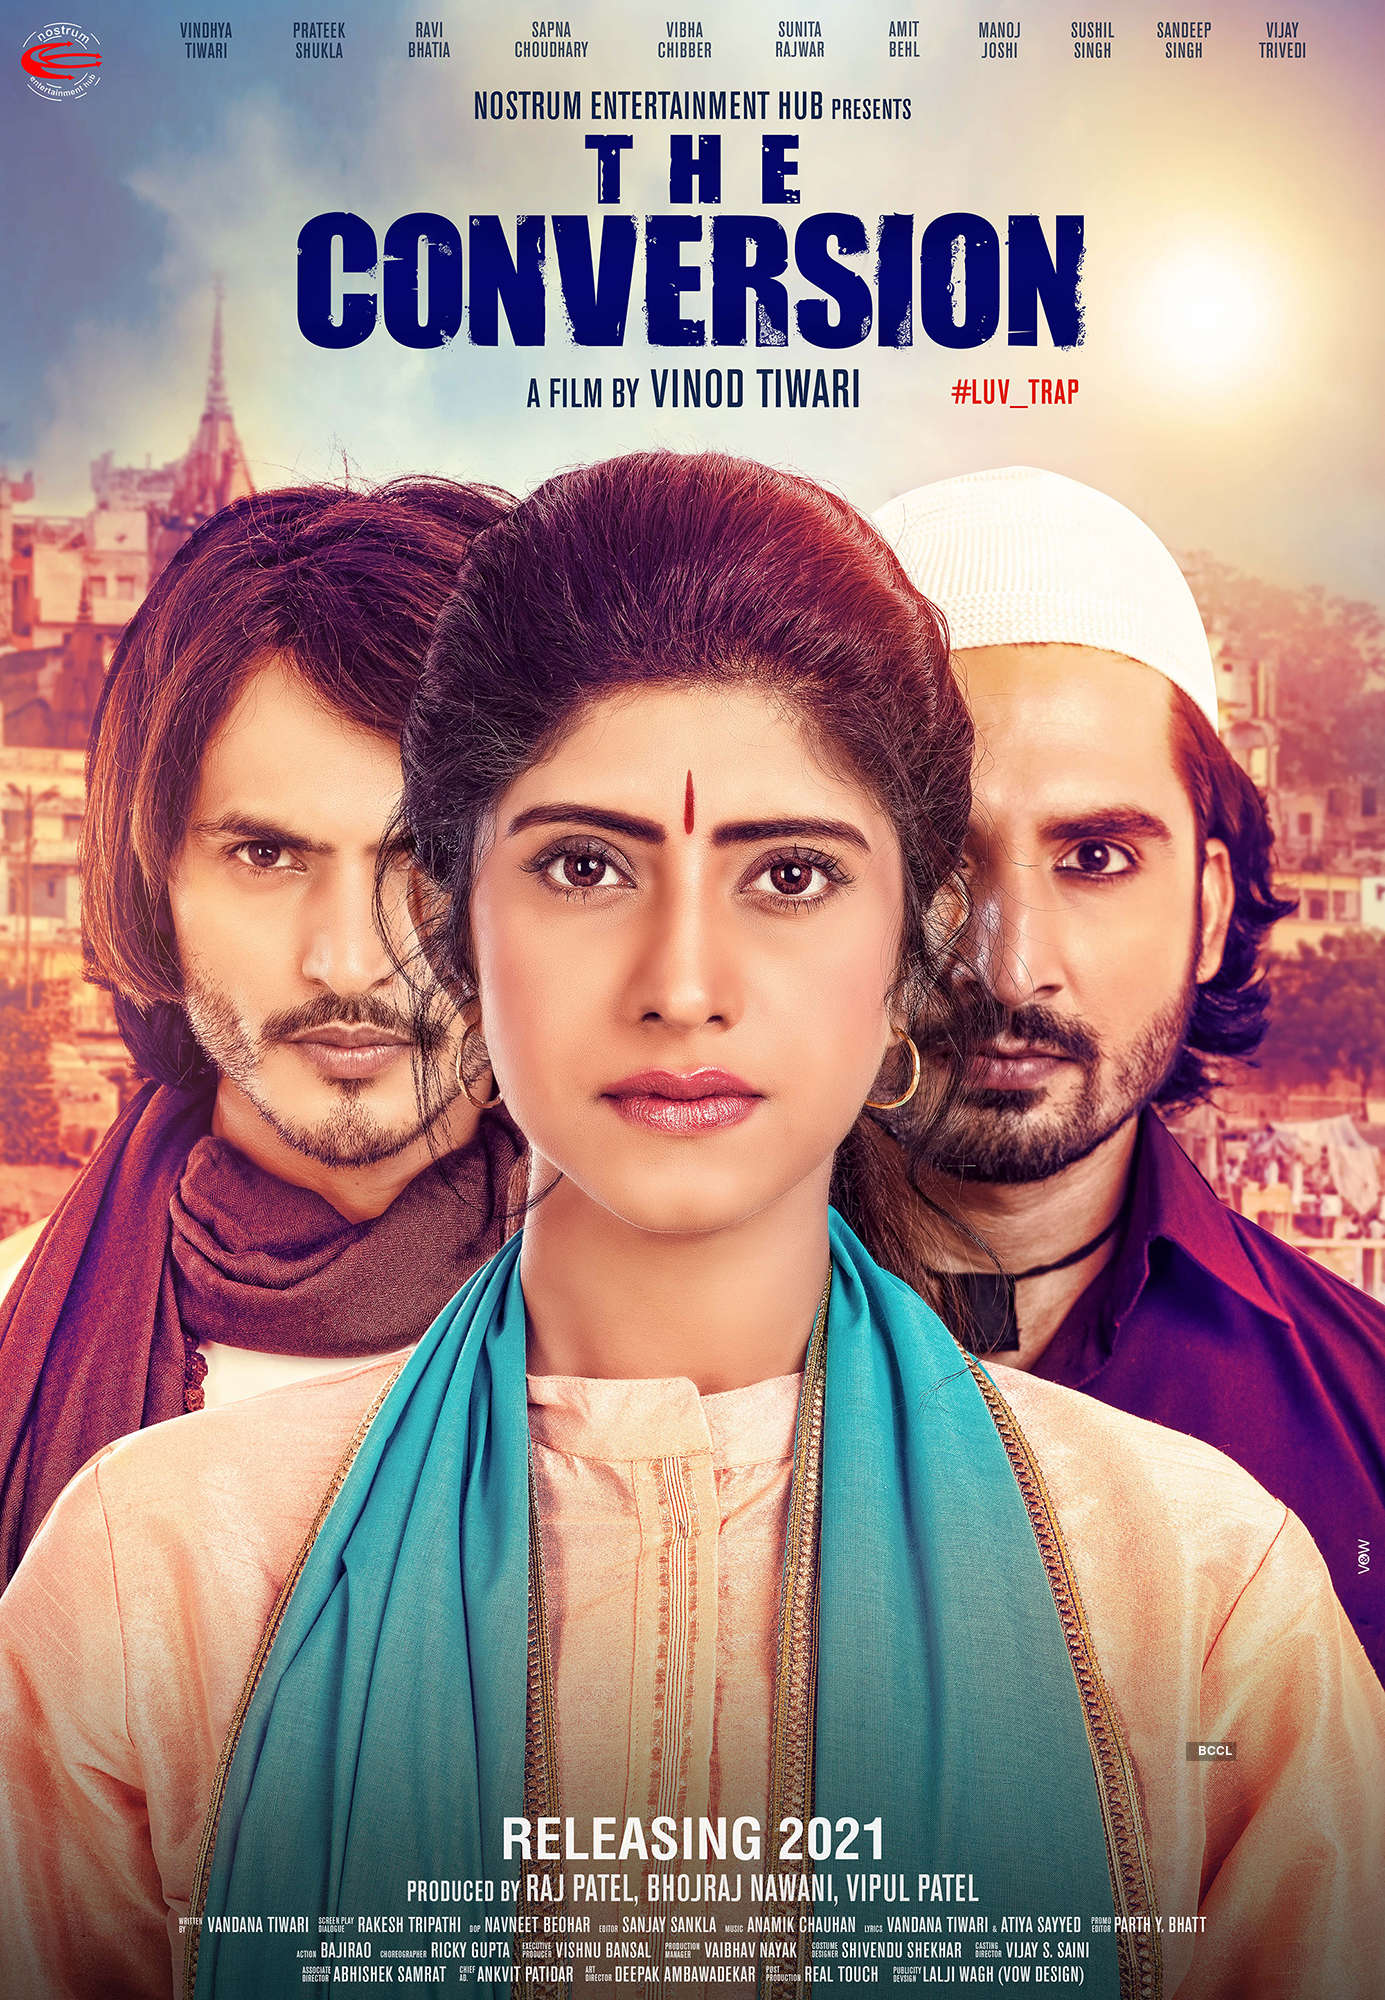 Know more about the upcoming movie 'The Conversion', a sensitive story about today's India